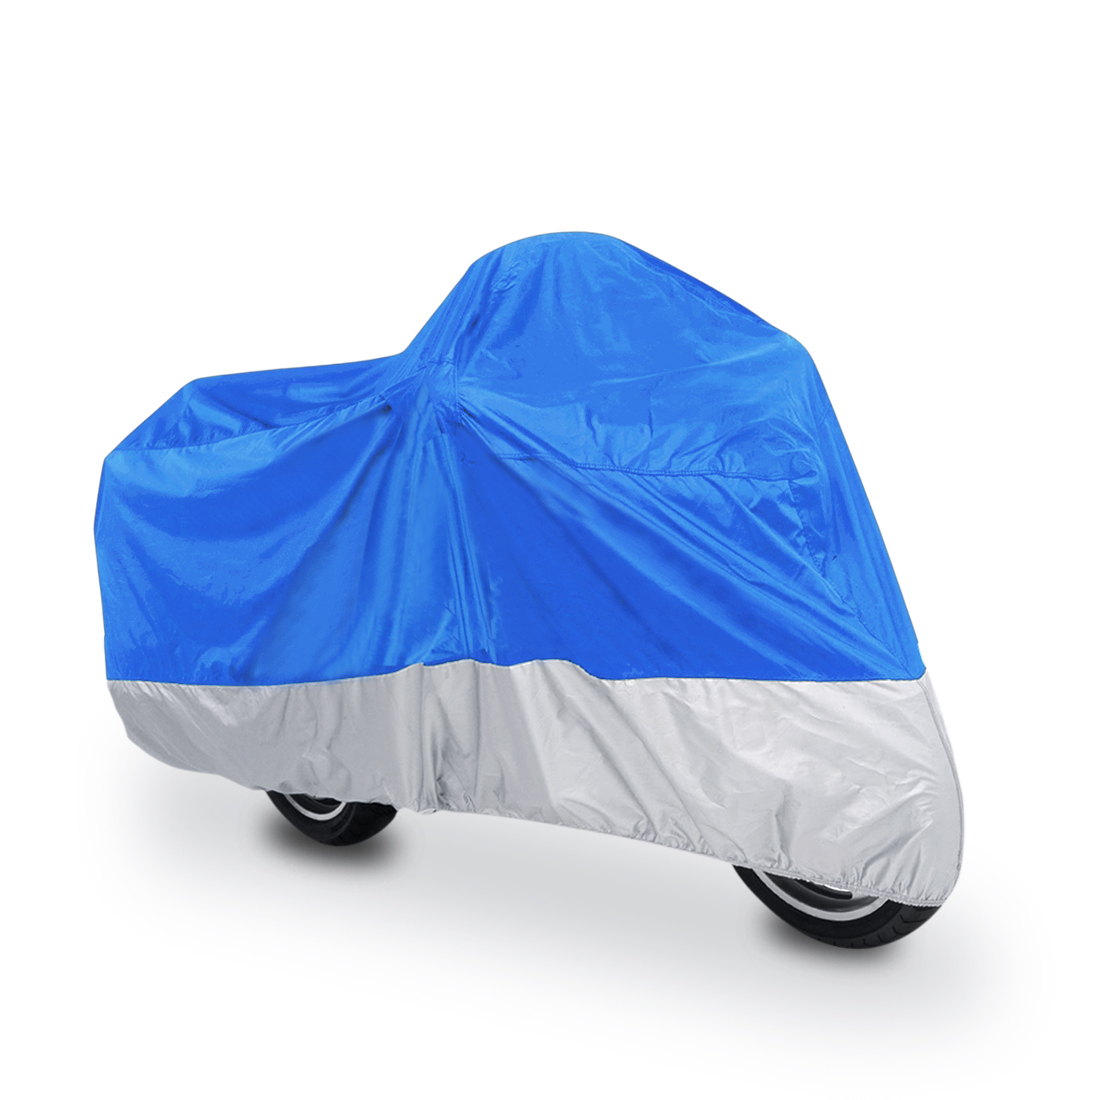 XXL 180T Rain Dust Motorcycle Cover Blue+Silver Outdoor Waterproof UV Protector